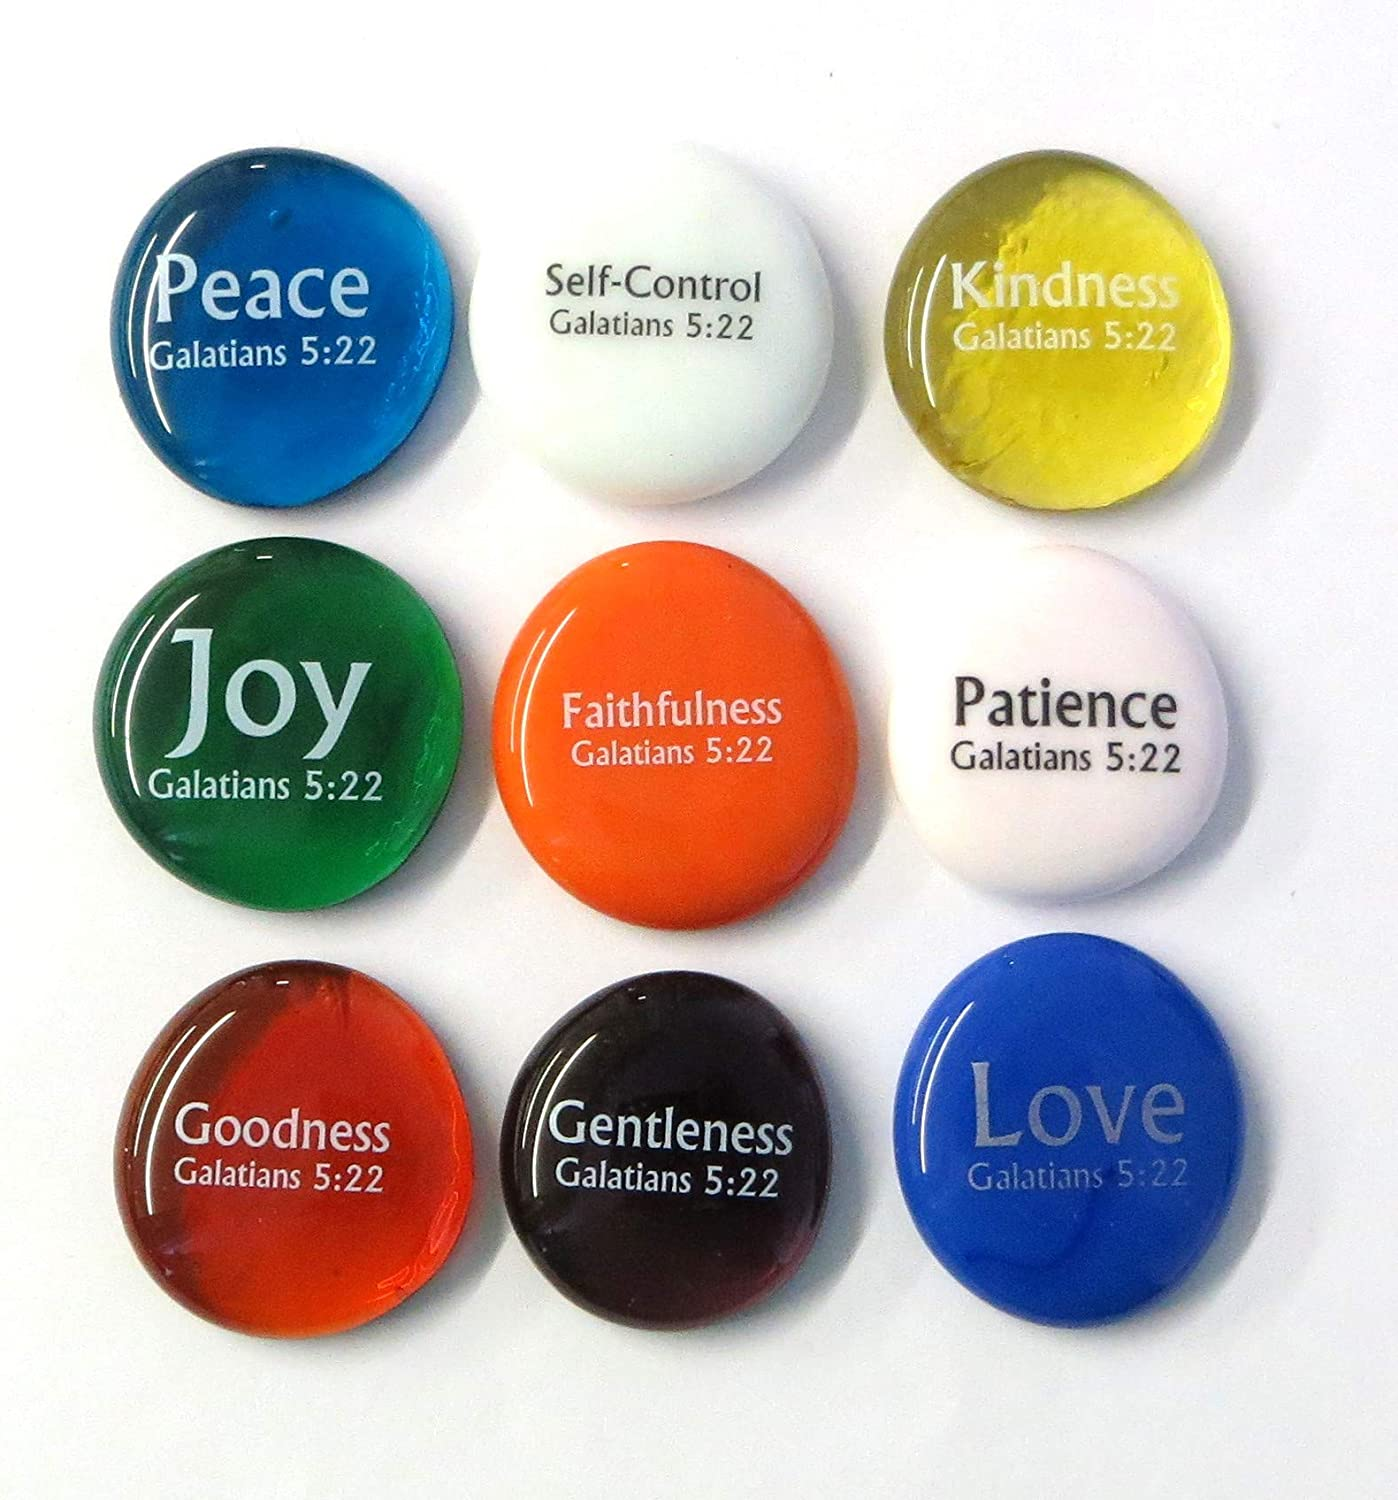 Lifeforce Glass Fruit of The Spirit Glass Stones, 9 Beautiful Rocks, Each with a Word from The Galatians 5:22 Verse. Inspiring Christian Education Tool from